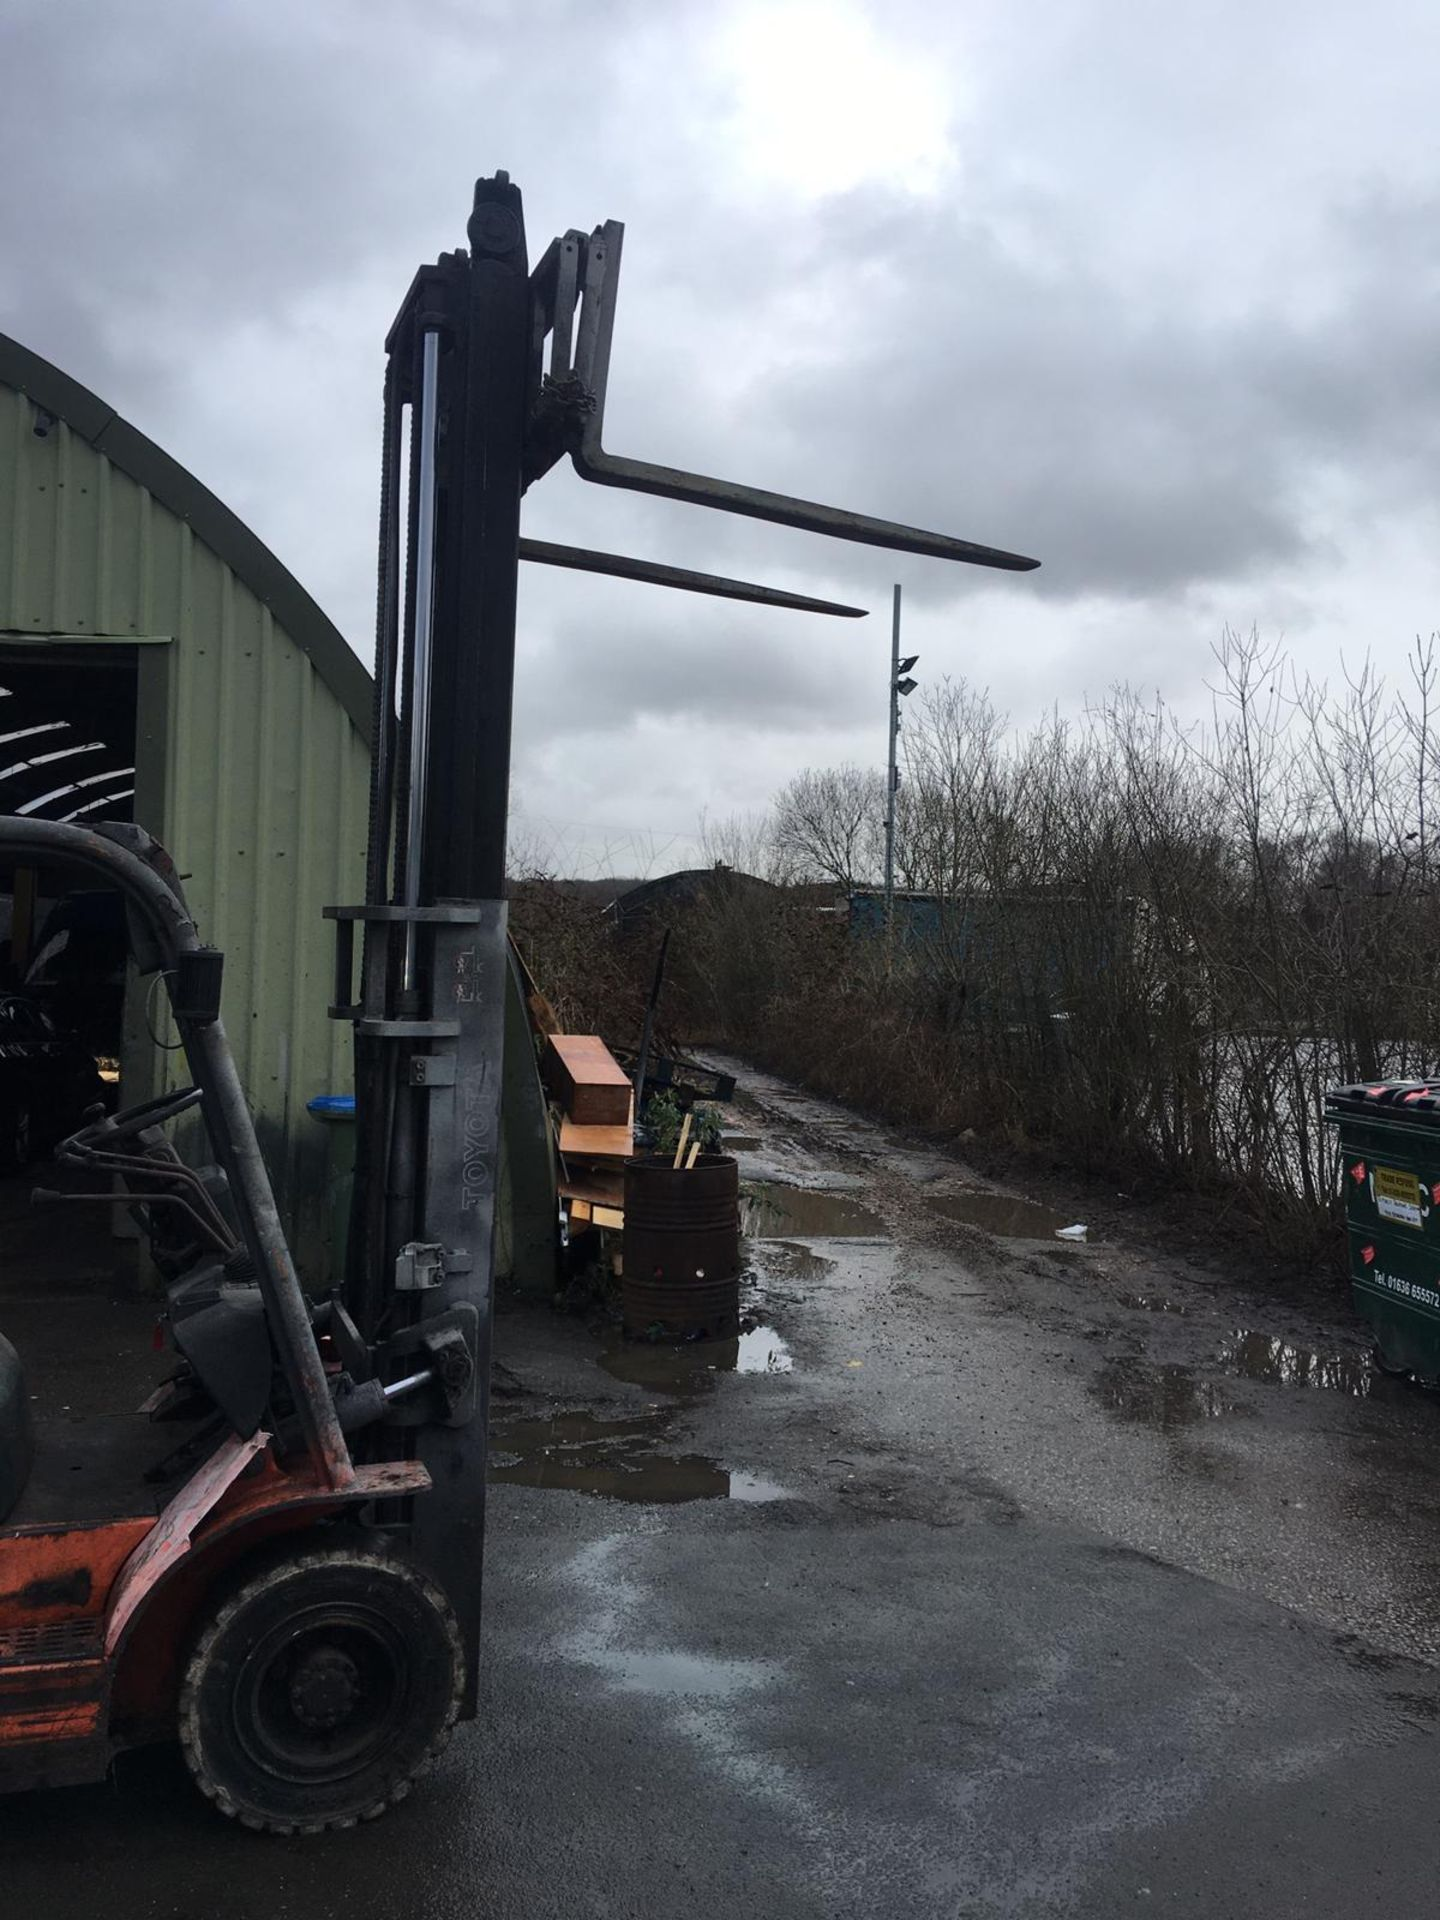 Lot 63 - TOYOTA 25 GAS POWERED FORKLIFT, RUNS, WORKS AND LIFTS *NO VAT*